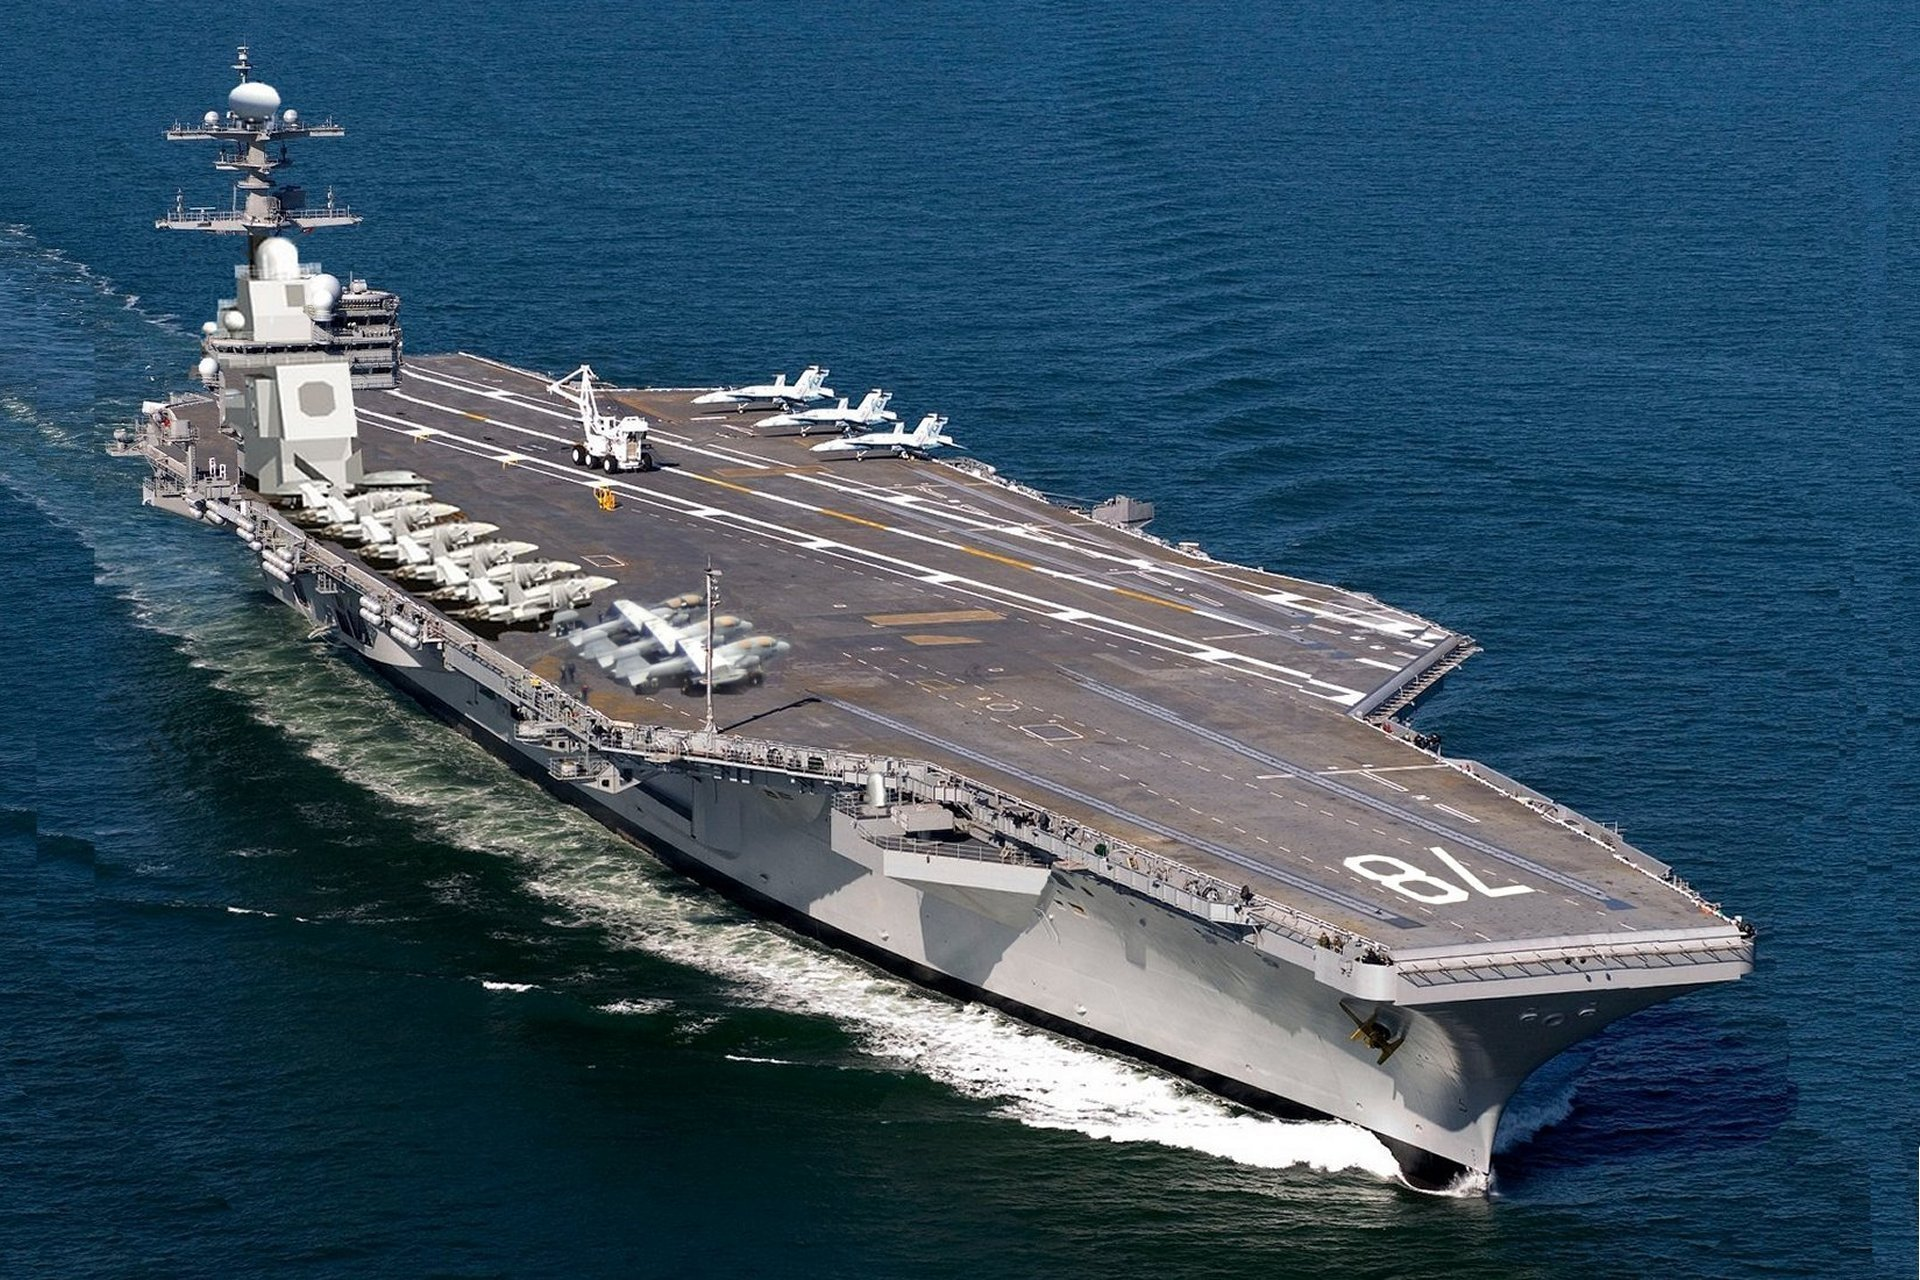 aircraft carrier USS Ronald Reagan reach at South Korea